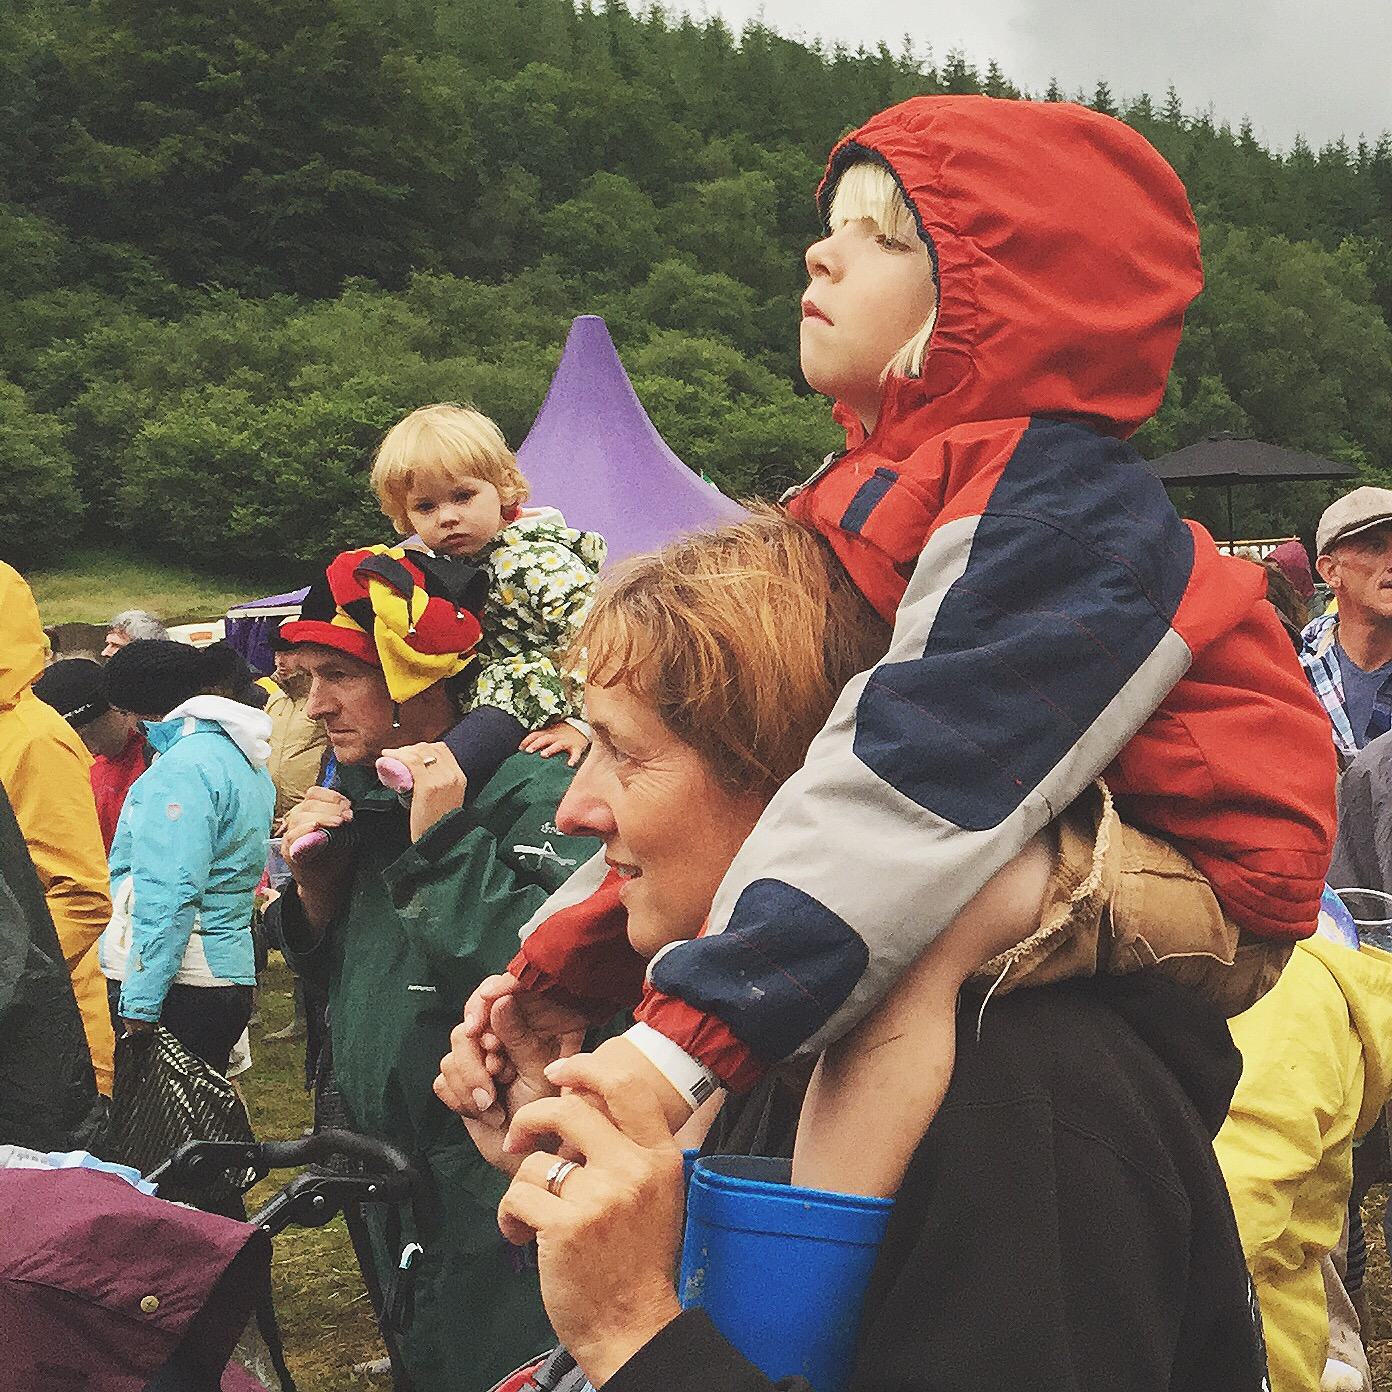 The kids had the best views of the main stage